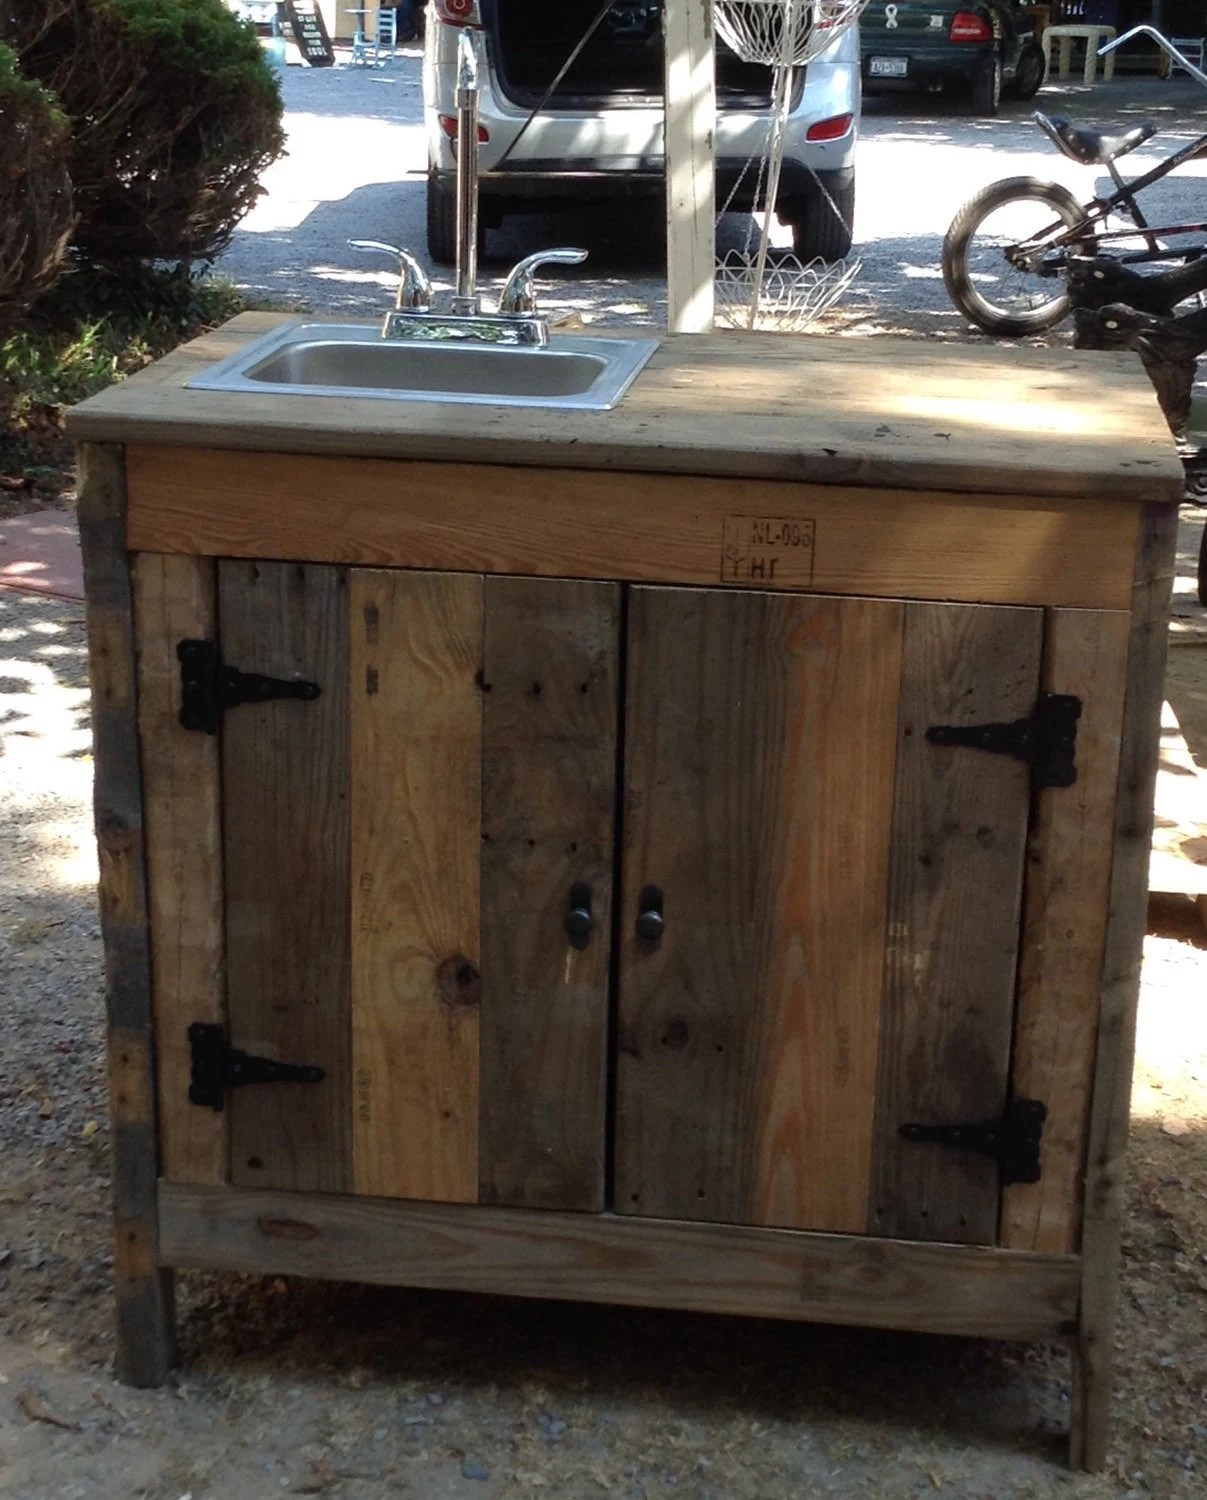 Sink Cabinet For Outdoor Entertainment Area Kitchen Or on Outdoor Patio Sink id=80525